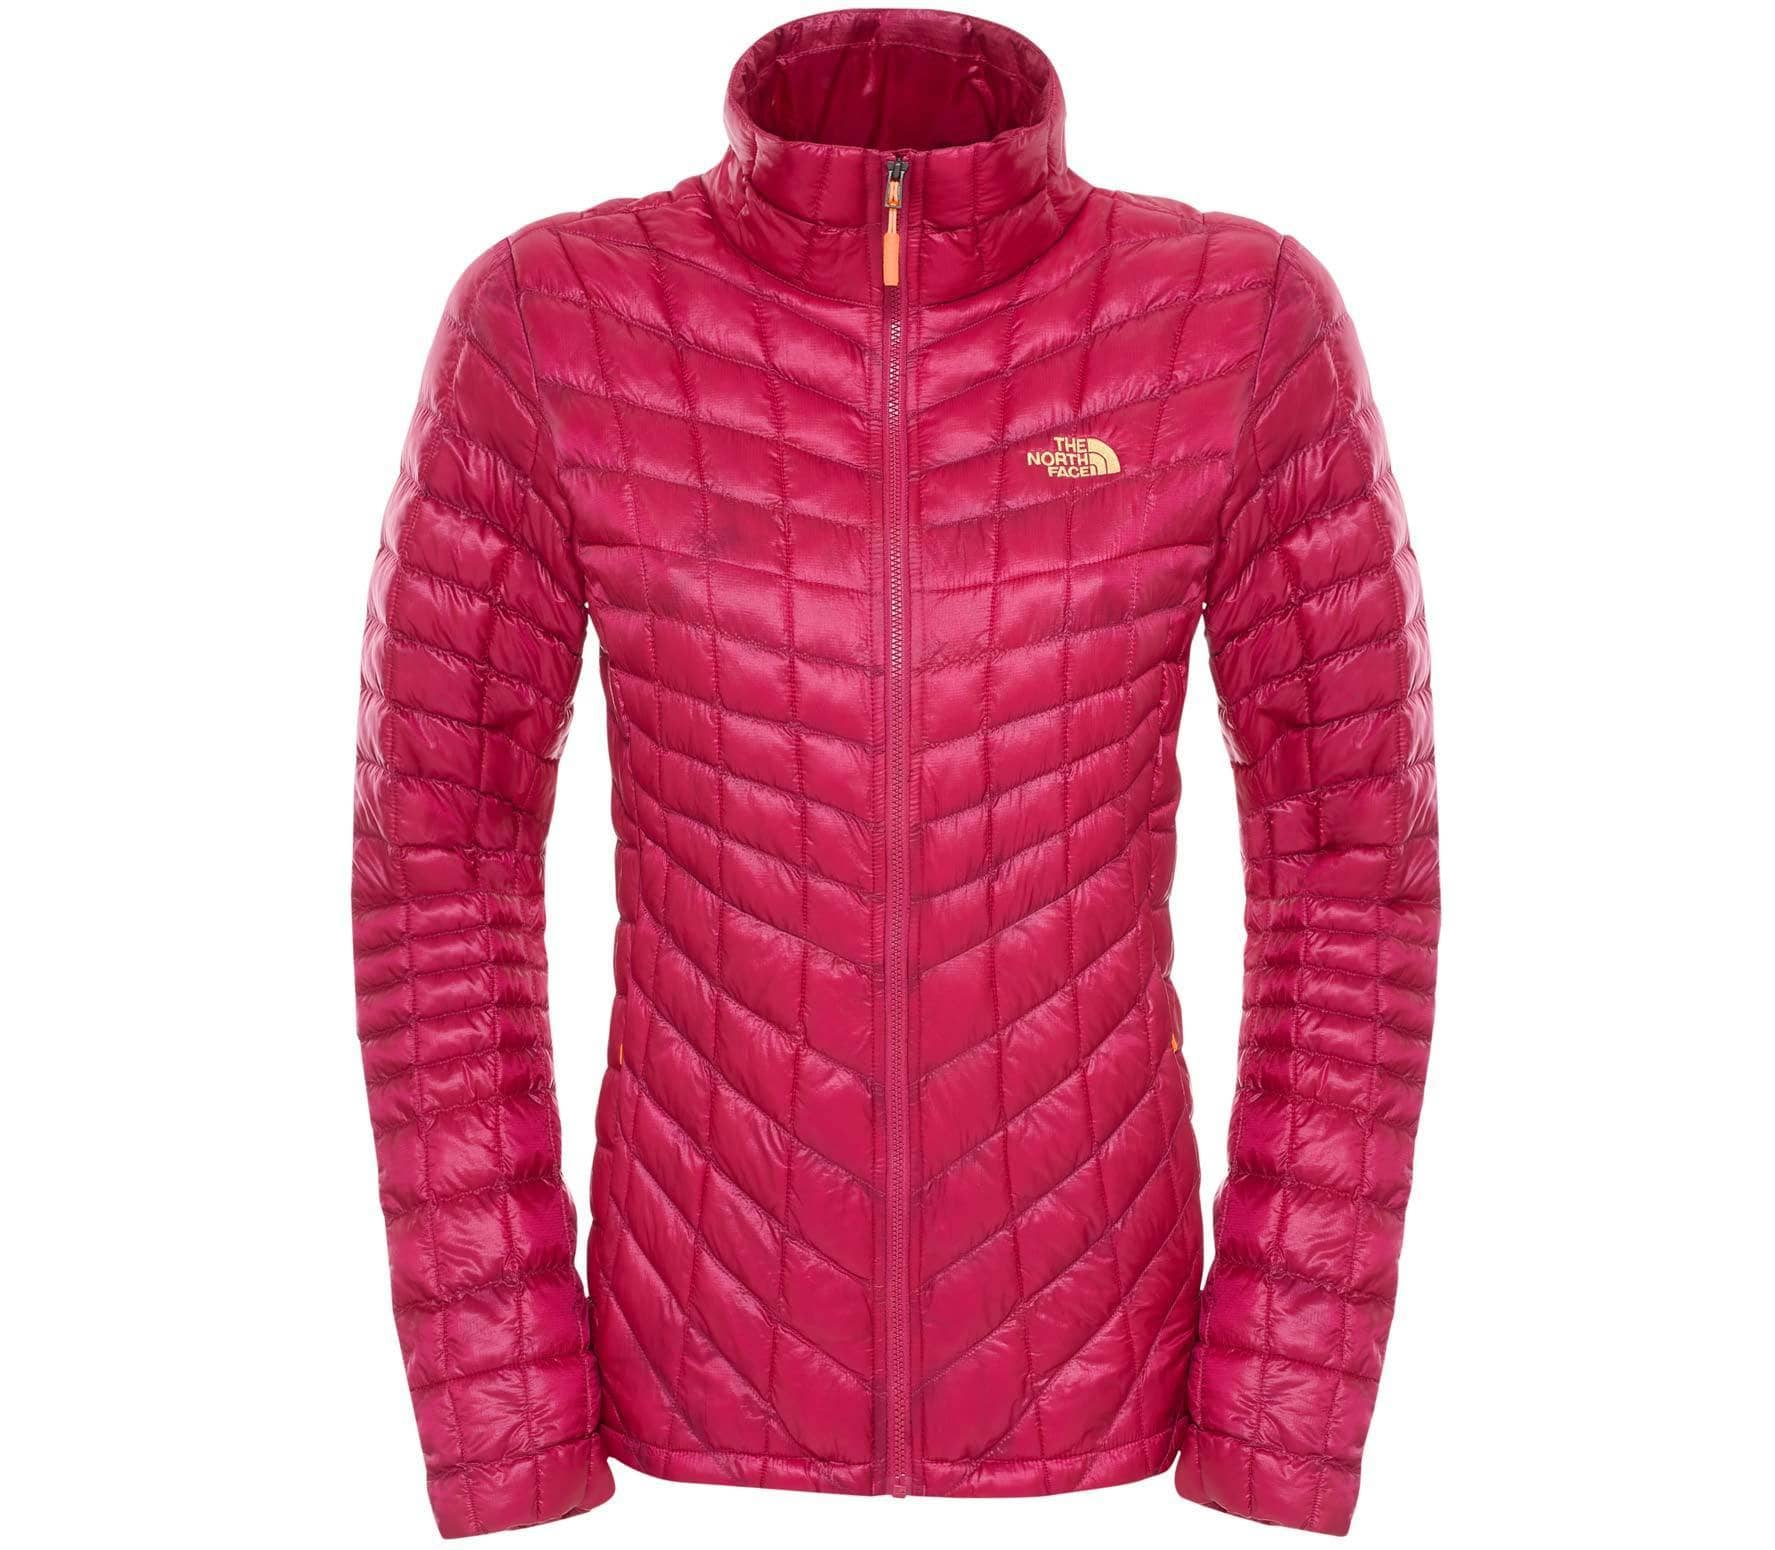 Thermoball rojo Zip Chaqueta North Face The Full Primaloft Mujer wpaf6Sq